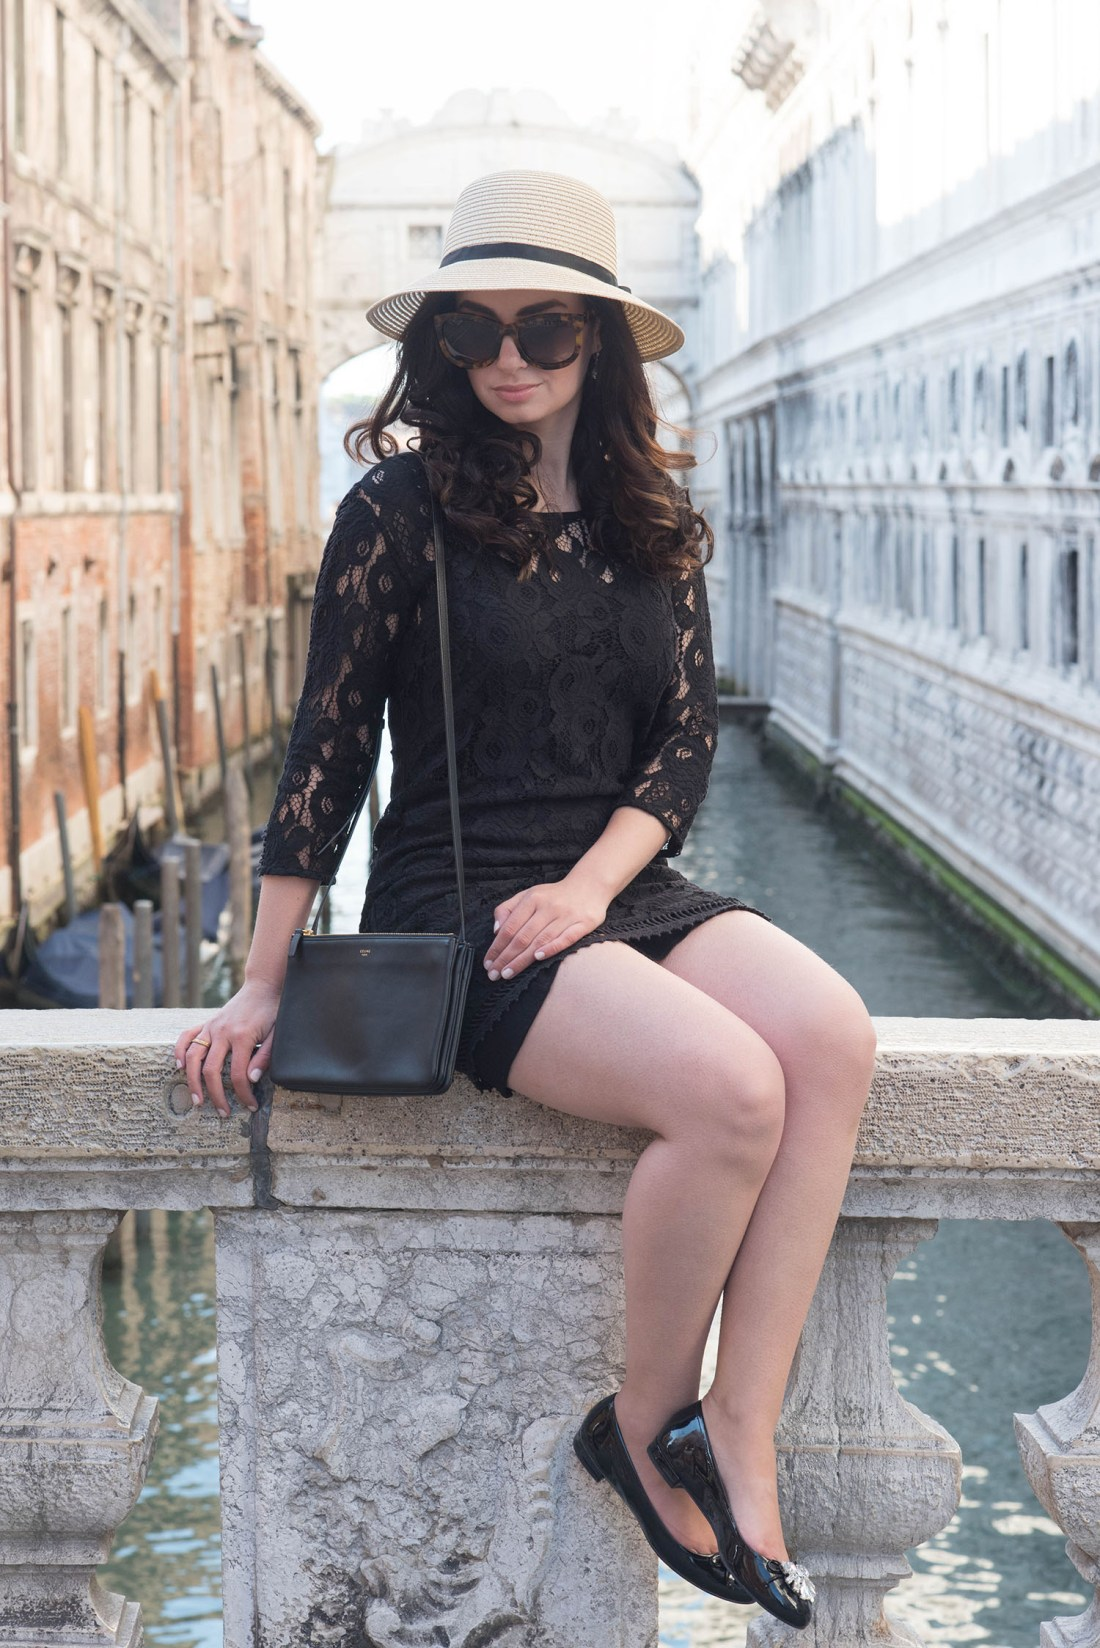 Fashion blogger Cee Fardoe of Coco & Vera sits on a bridge in Venice wearing a Gentlefawn lace dress, Miumiu bejewelled flats, Anine Bing Los Angeles sunglasses and carrying a Celine trio bag